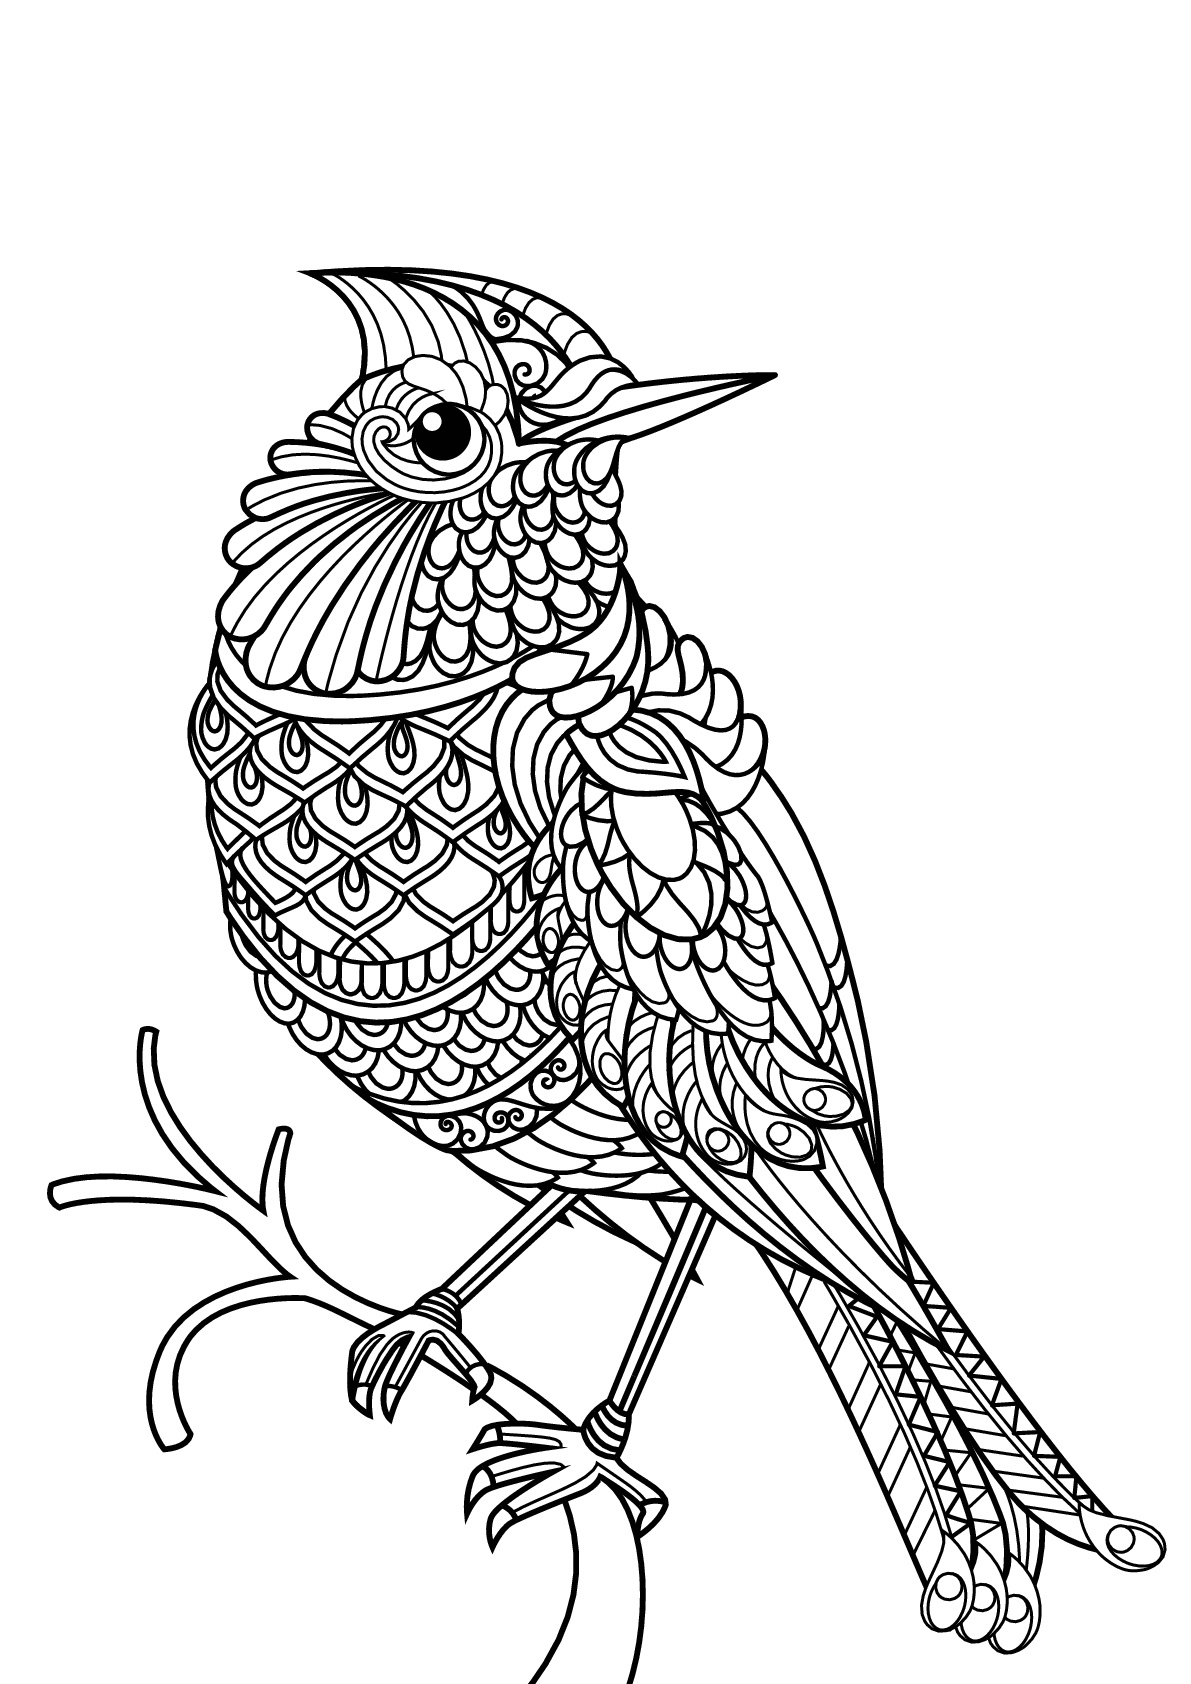 Free book bird - Birds Adult Coloring Pages